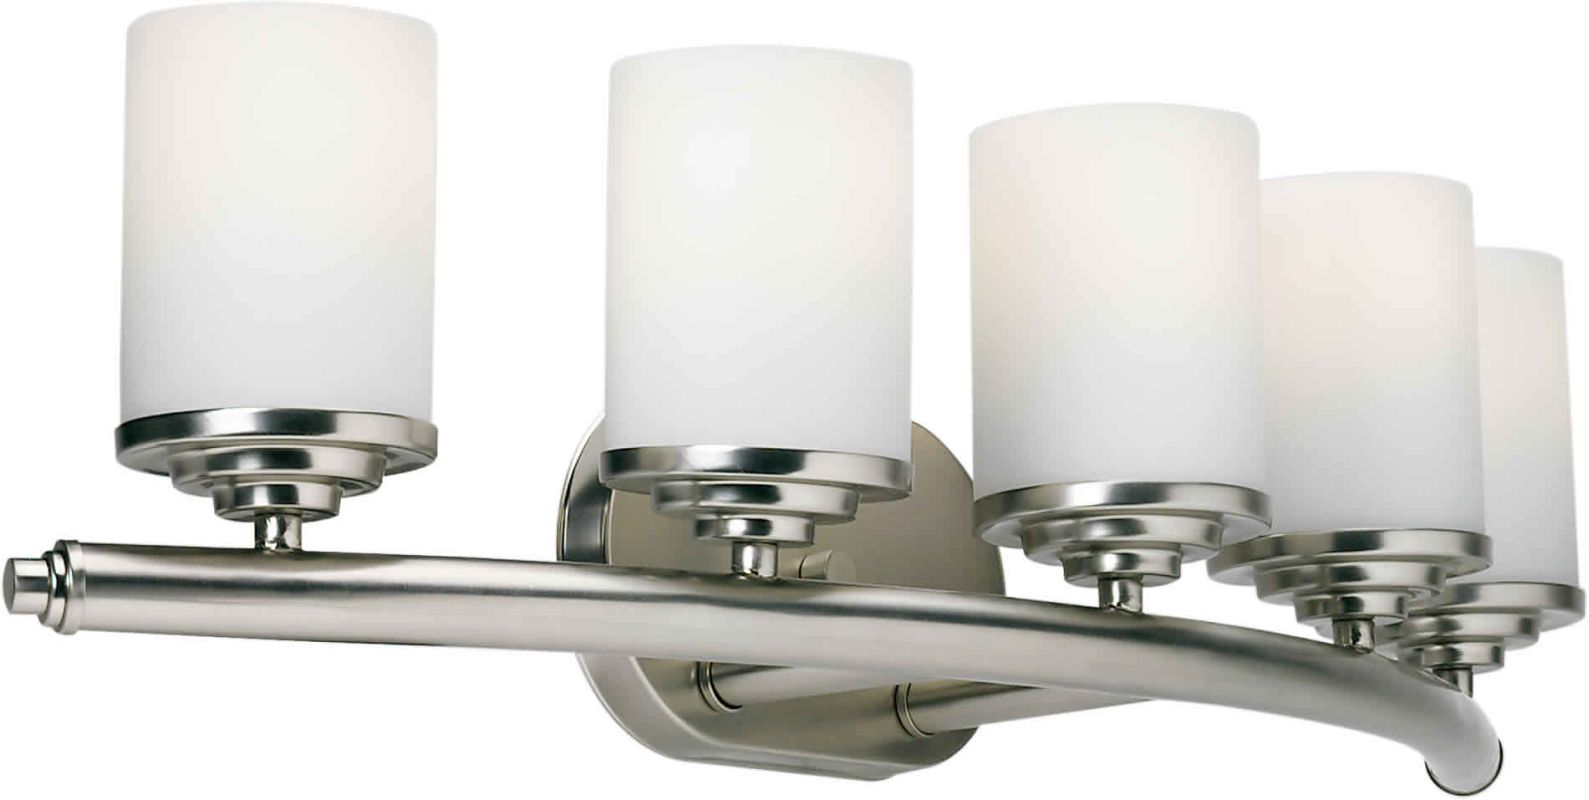 Forte Lighting 5105 05 55 Brushed Nickel 29 Modern 5 Light Bathroom Fixture